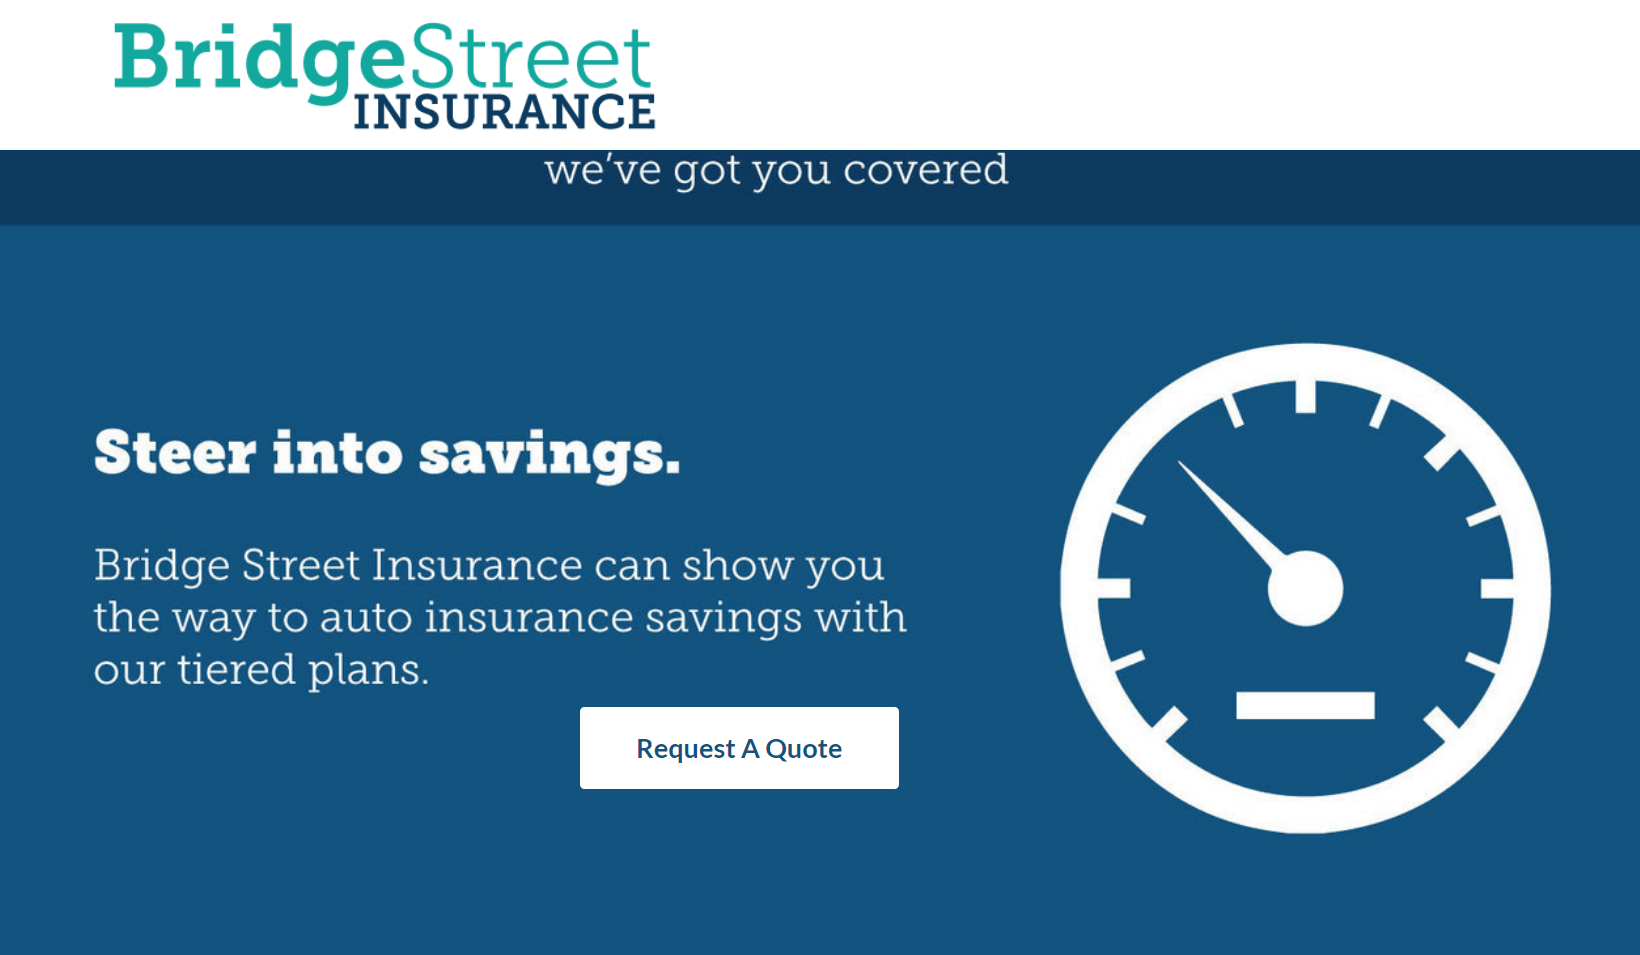 Screenshot of a web page for Bridge Street Insurance featured a Request a Quote call to action button